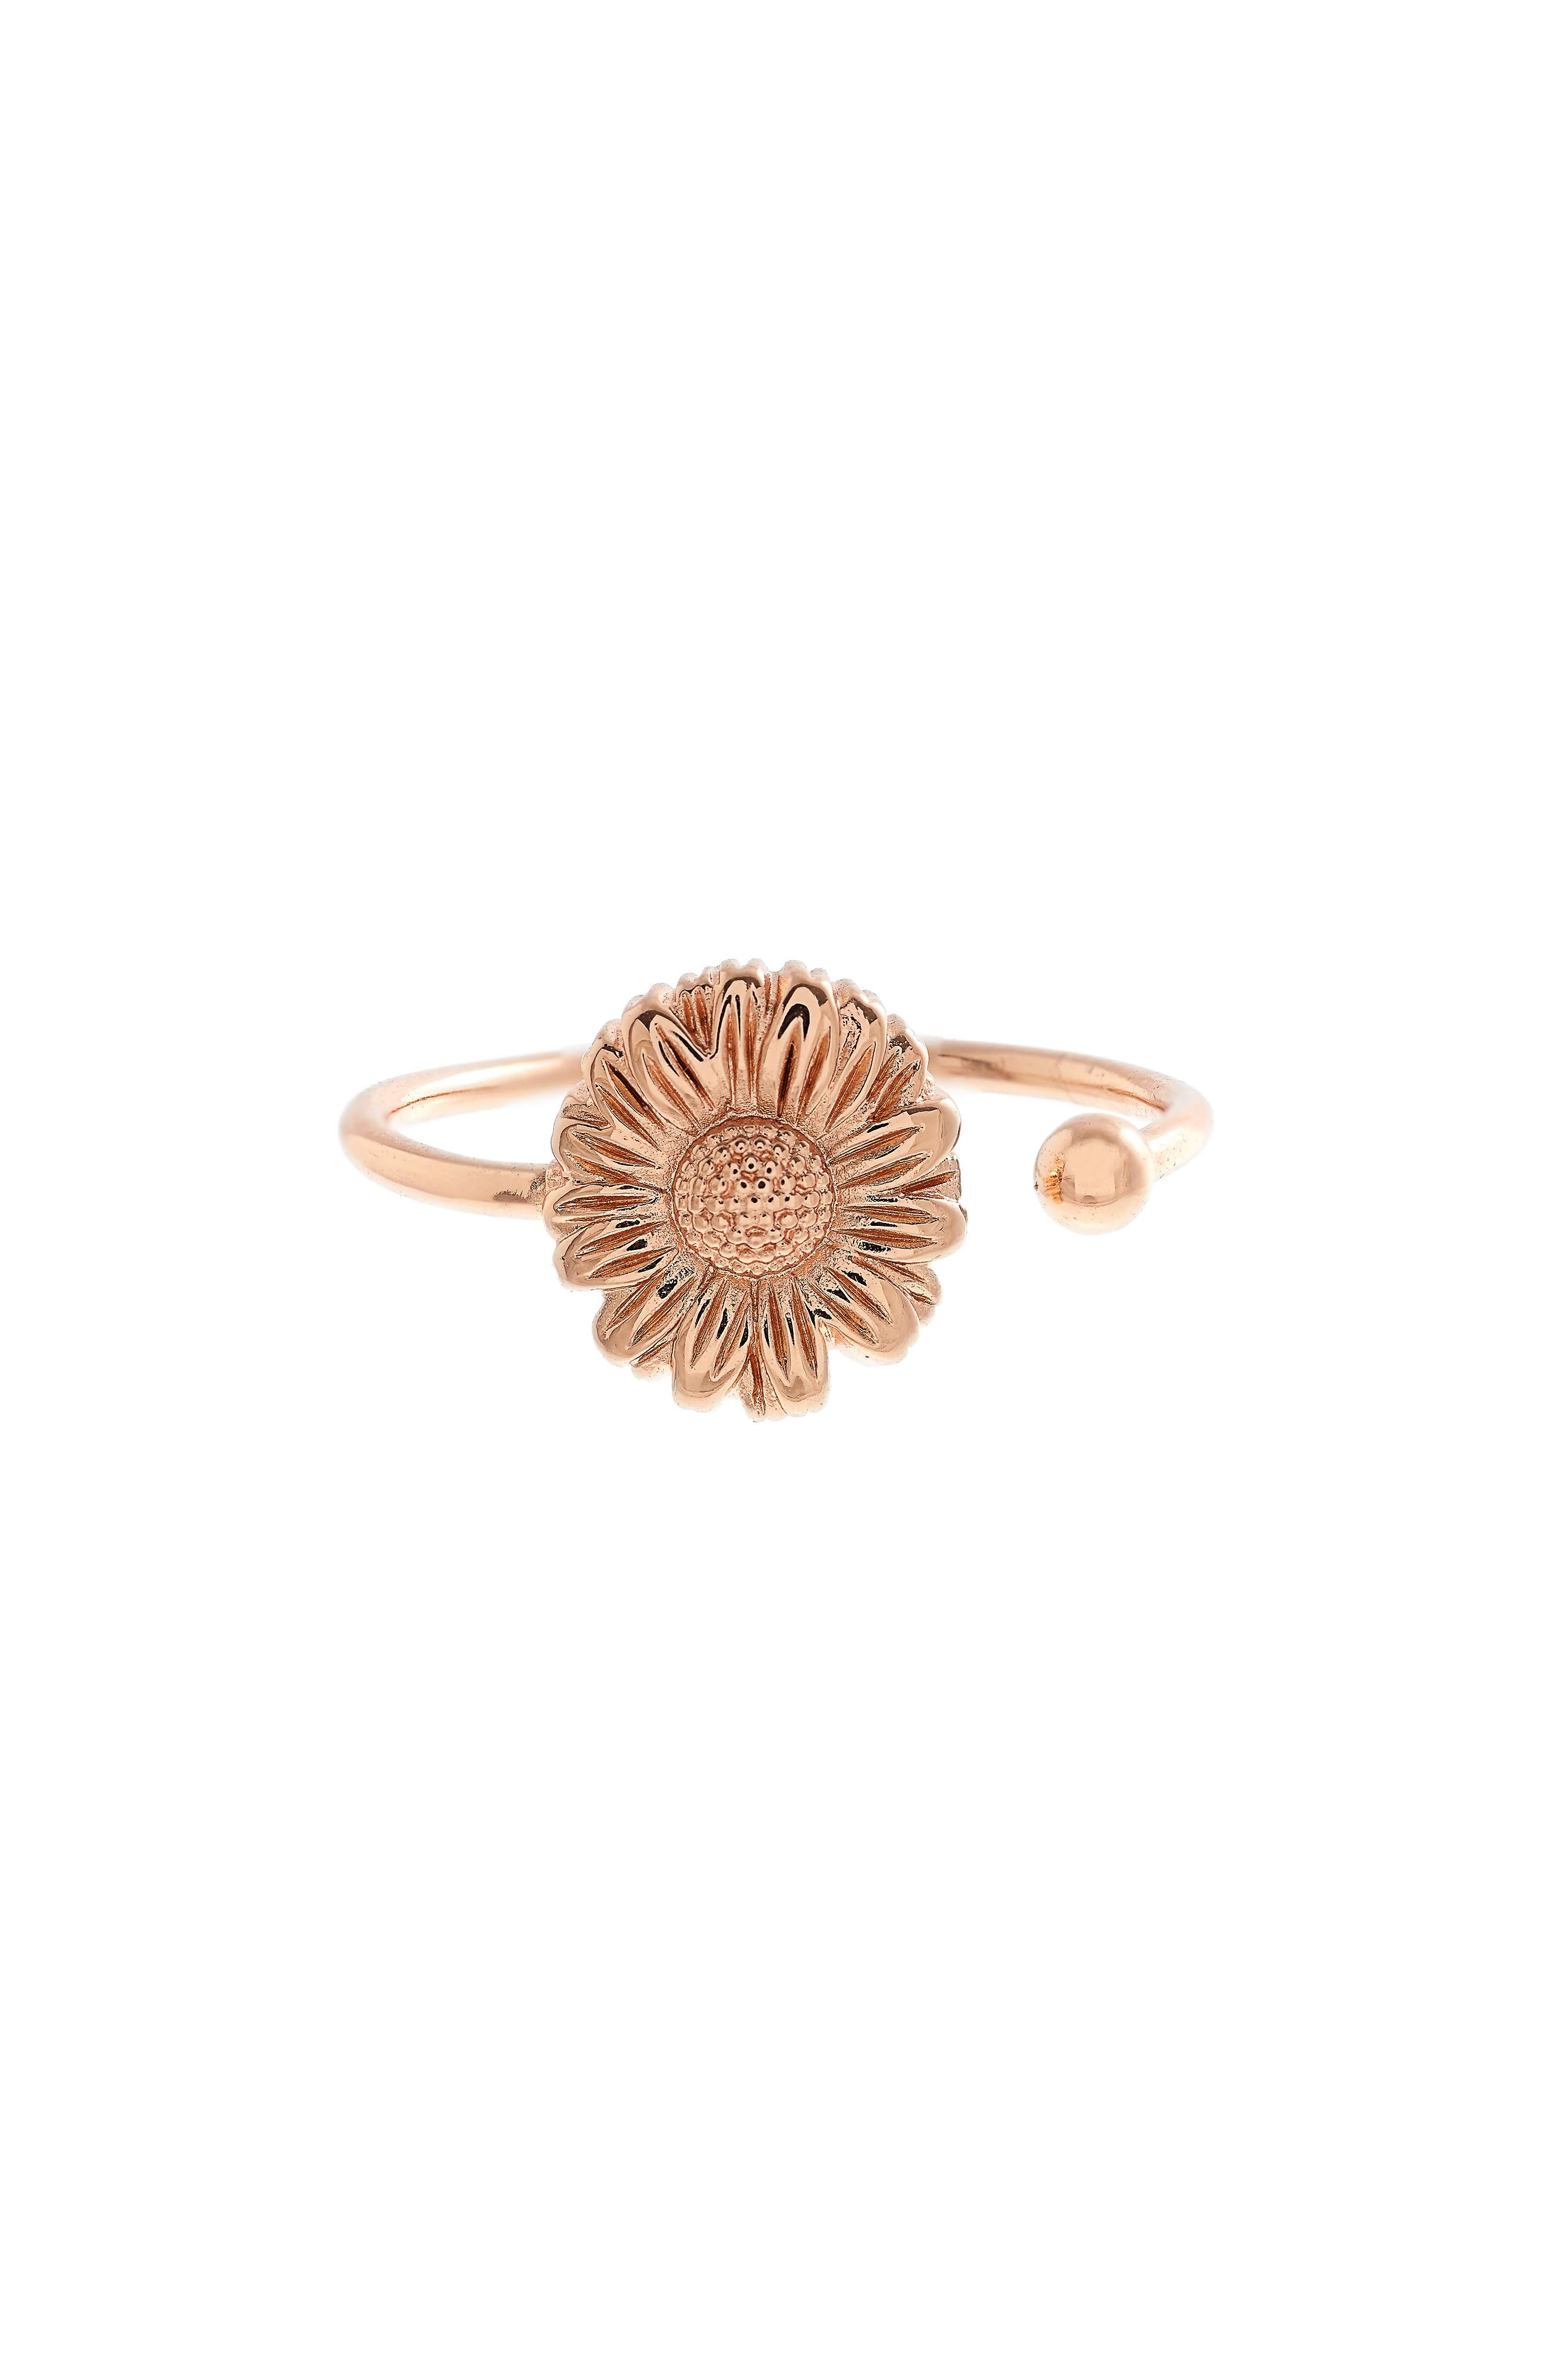 Daisy Ring,                         Main,                         color, Rose Gold